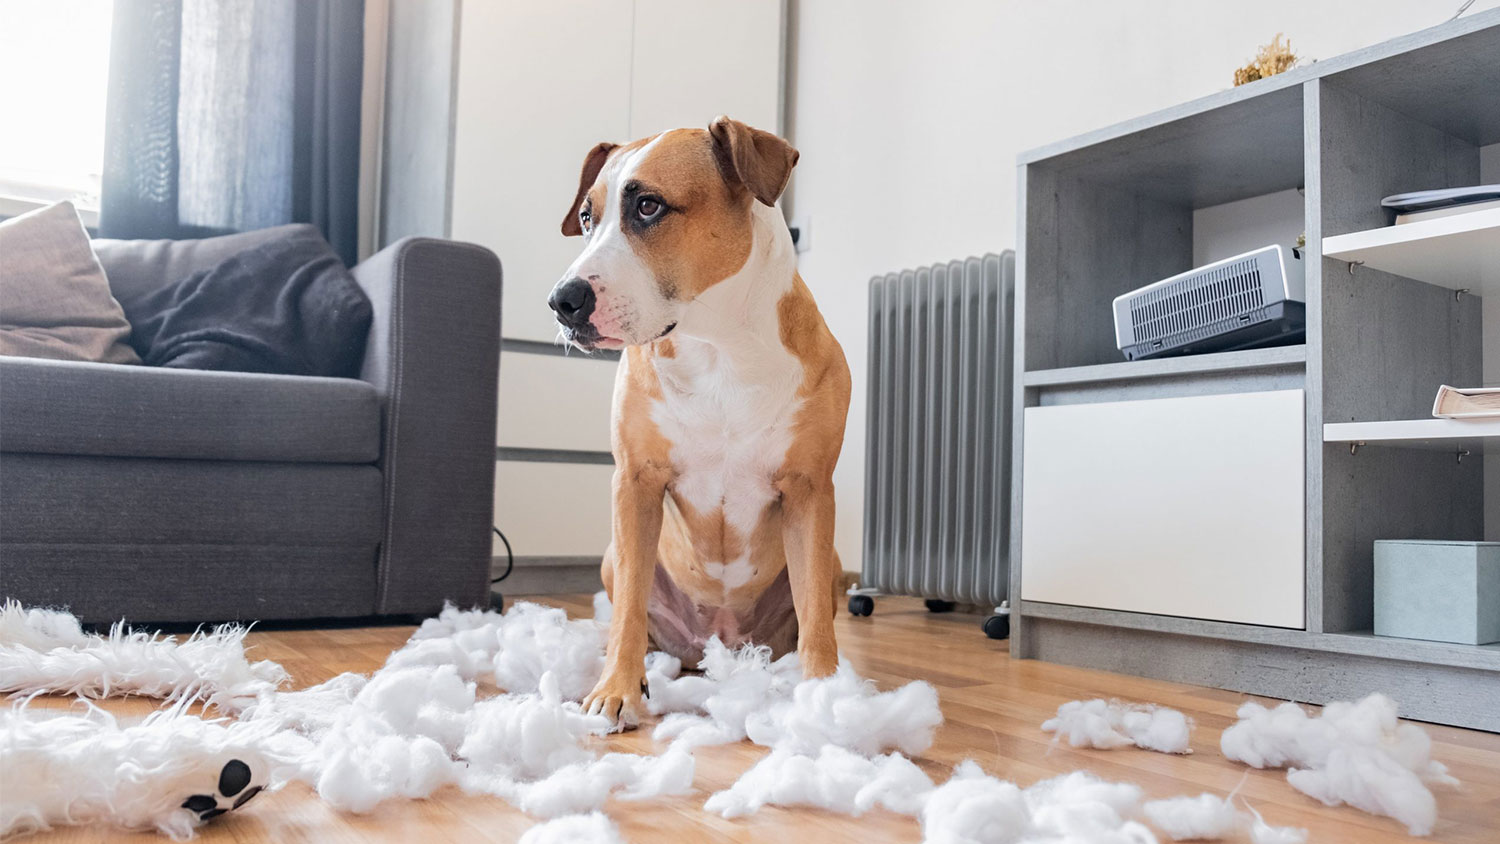 HOW TO PREPARE YOUR PETS BEFORE YOU GO BACK TO WORK